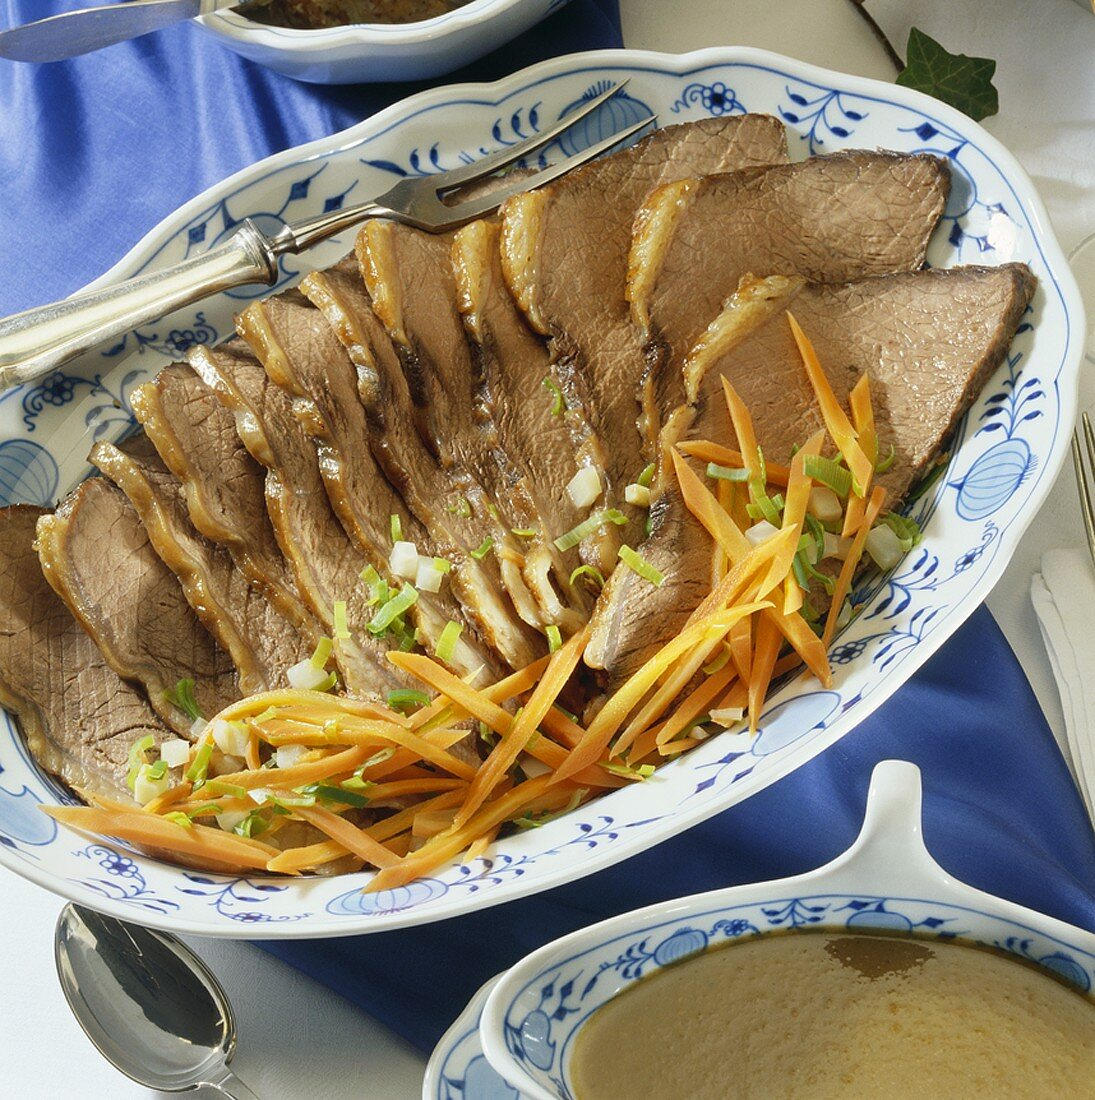 Sliced Sauerbraten (braised, marinated meat) with root vegetables